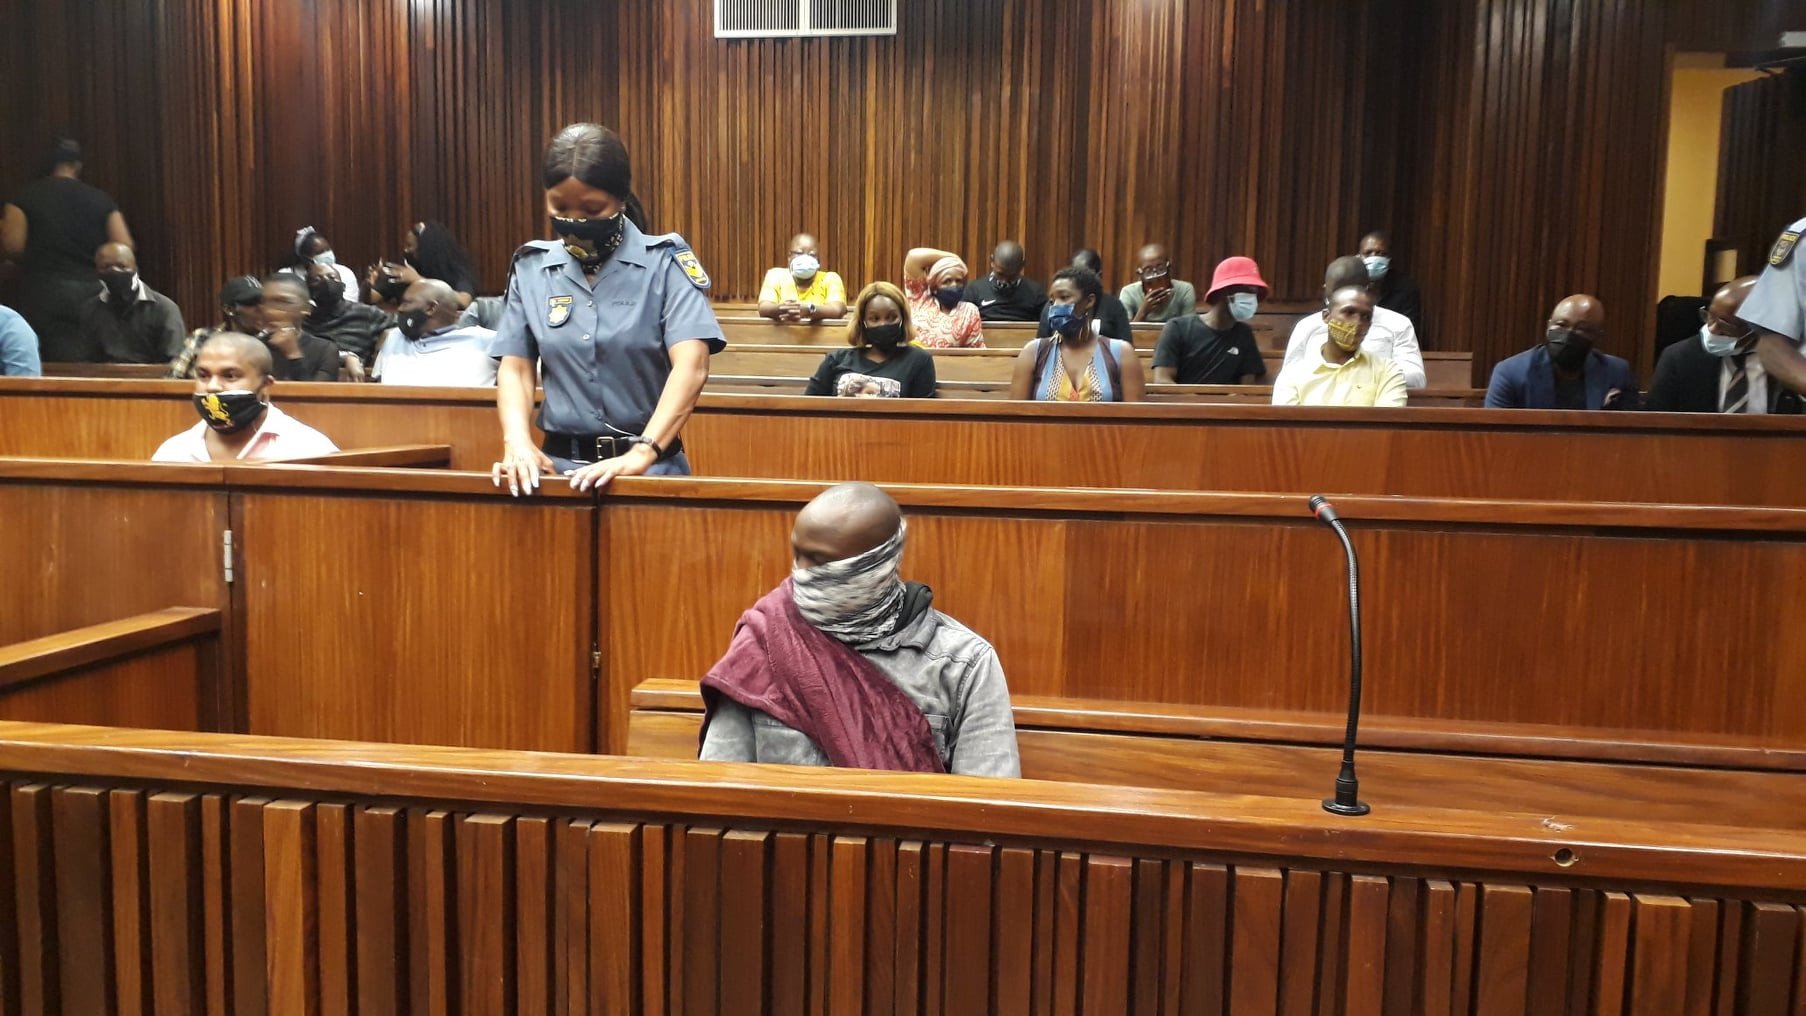 South Africa: A man was hired by her married lover to kill her in order to hide the pregnancy from his wife